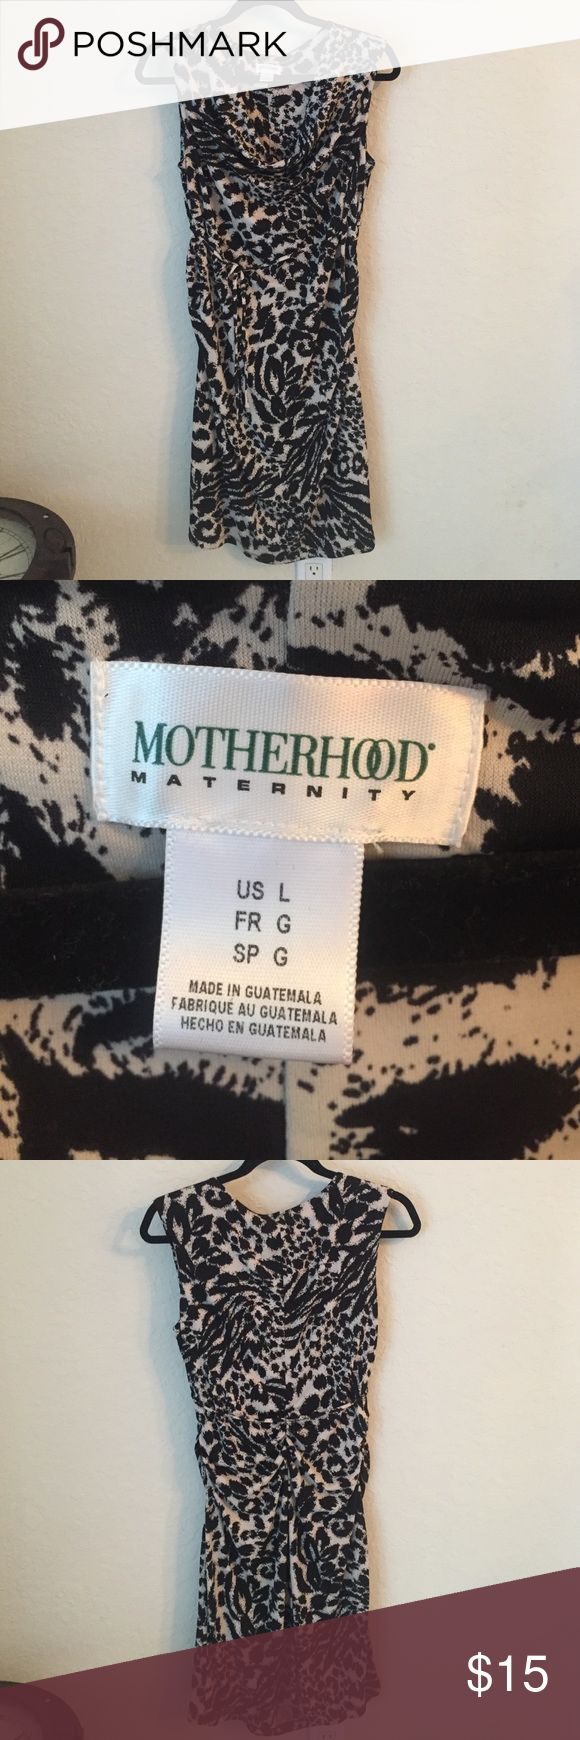 Beautiful animal print Motherhood Maternity  dress Like new condition, wore once. I adore this dress! If only it weren't maternity! Motherhood Maternity Dresses